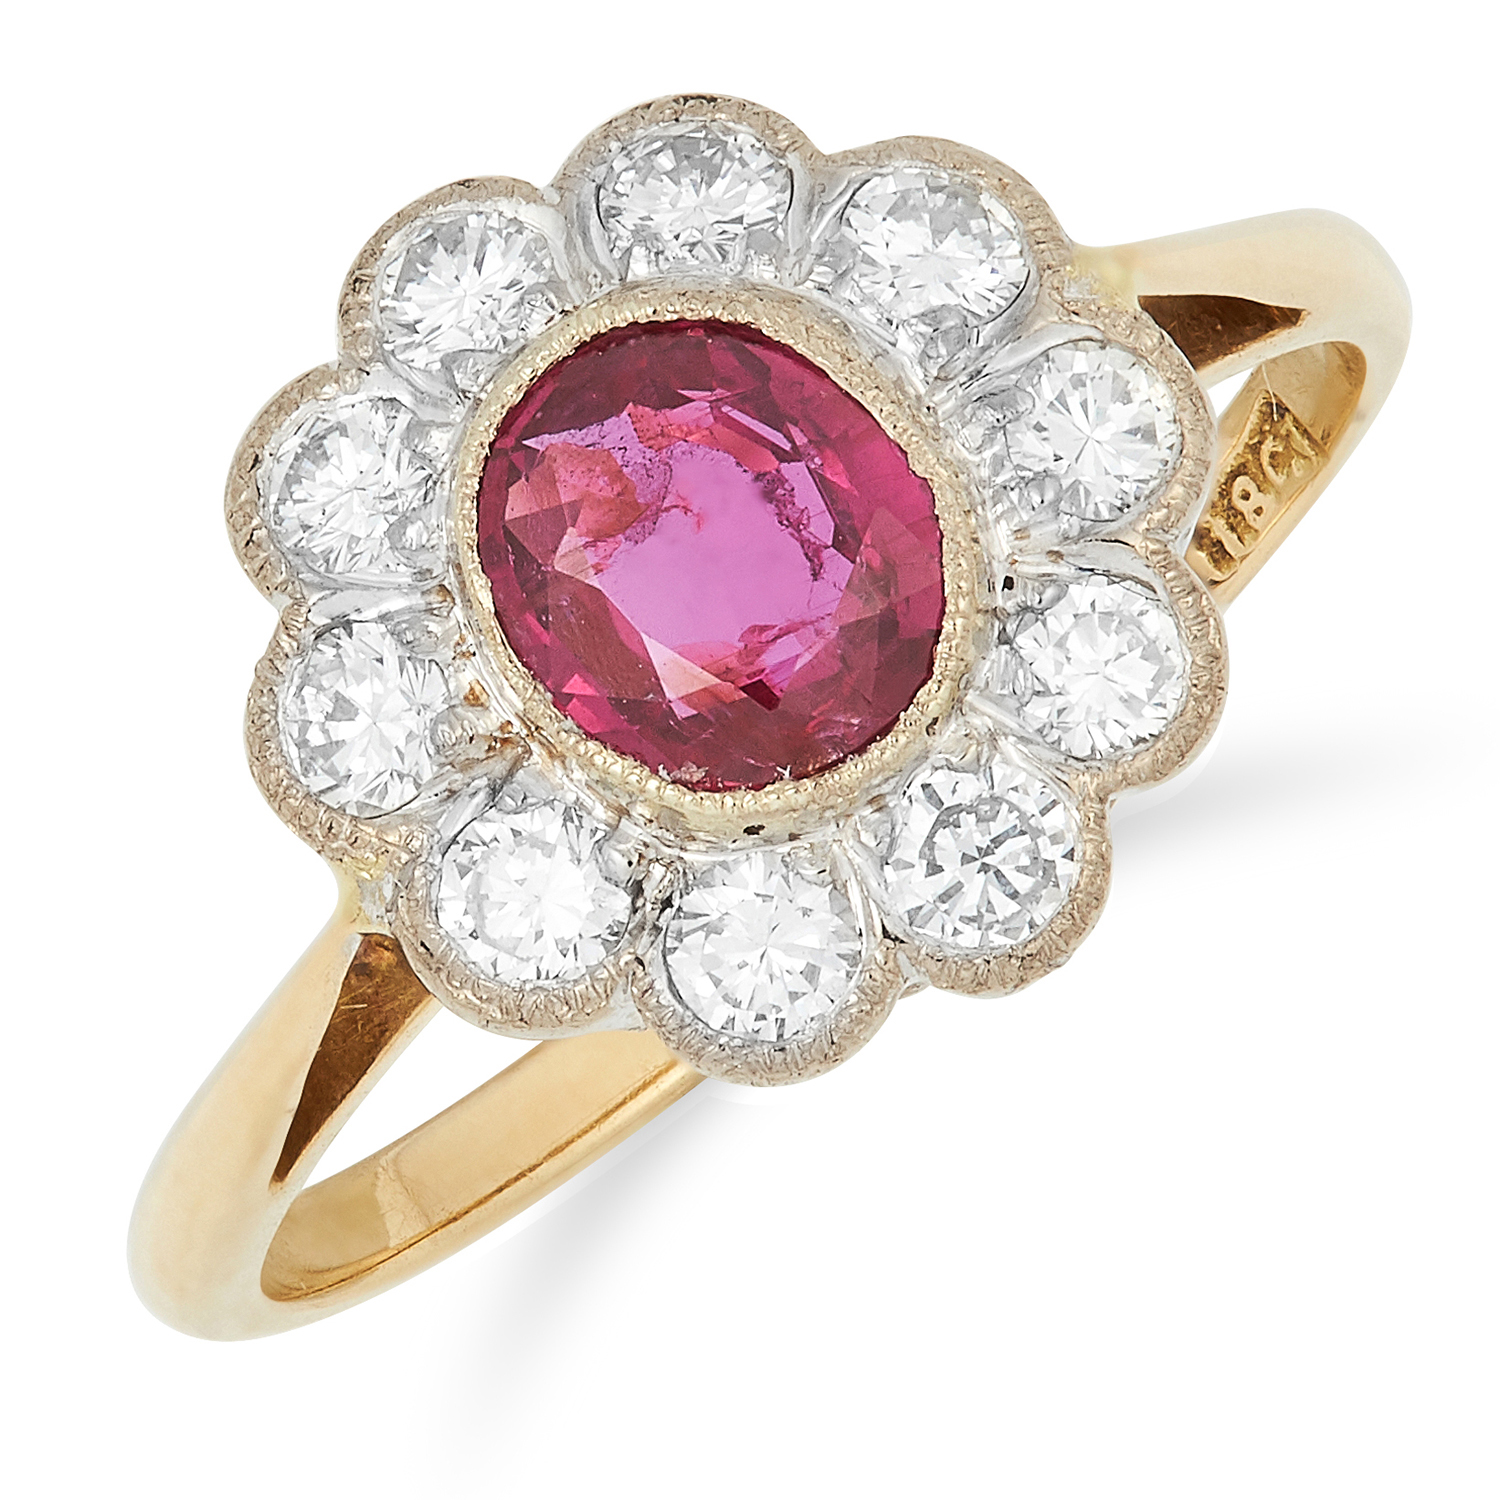 RUBY AND DIAMOND CLUSTER RING set with an oval cut ruby of approximately 0.68 carats, possibly Burma